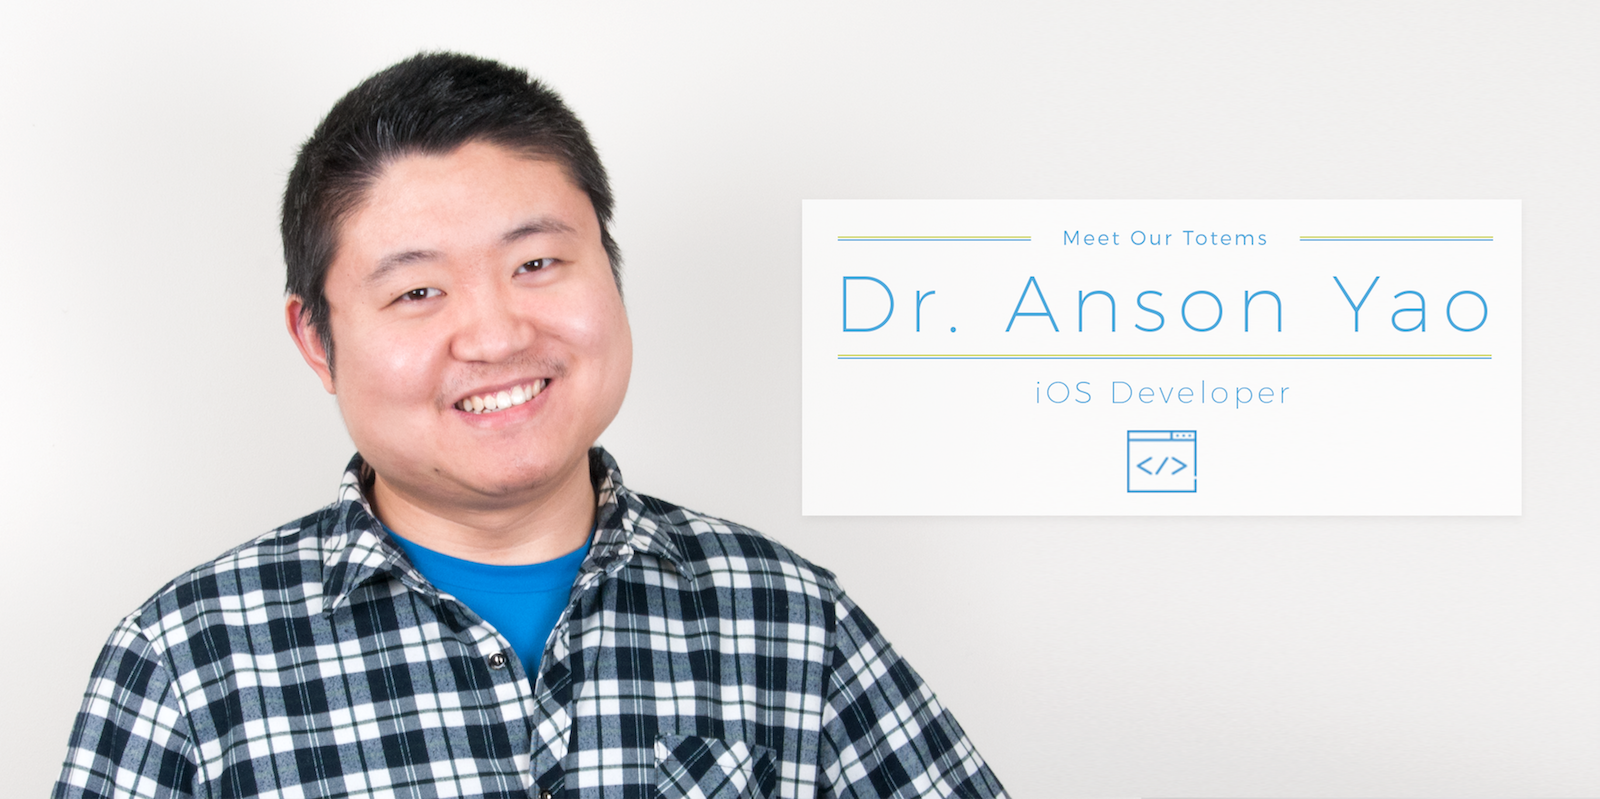 Meet Our Totems – Dr. Anson Yao